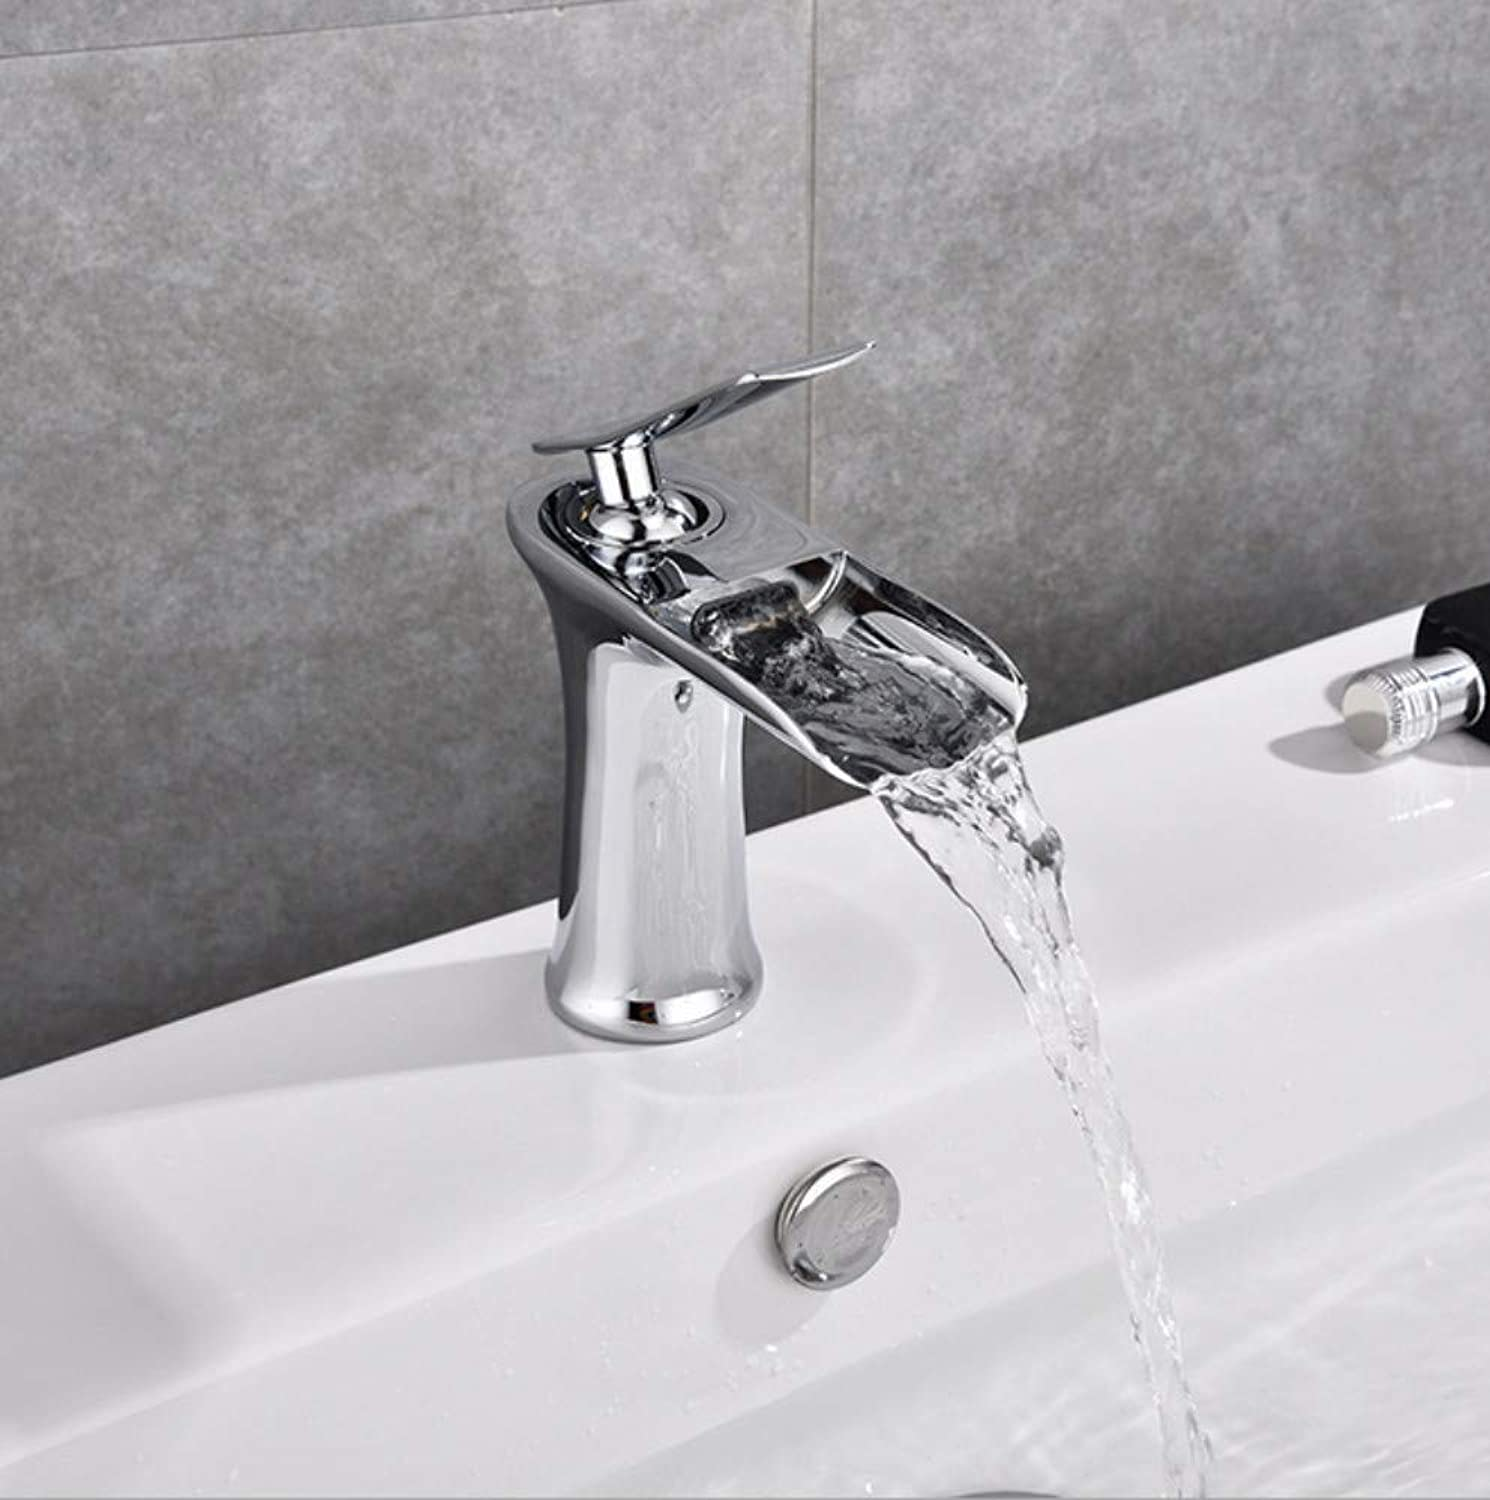 Xiujie Faucet Full Copper Single Hot and Cold Basin Waterfall Faucet On The Faucet